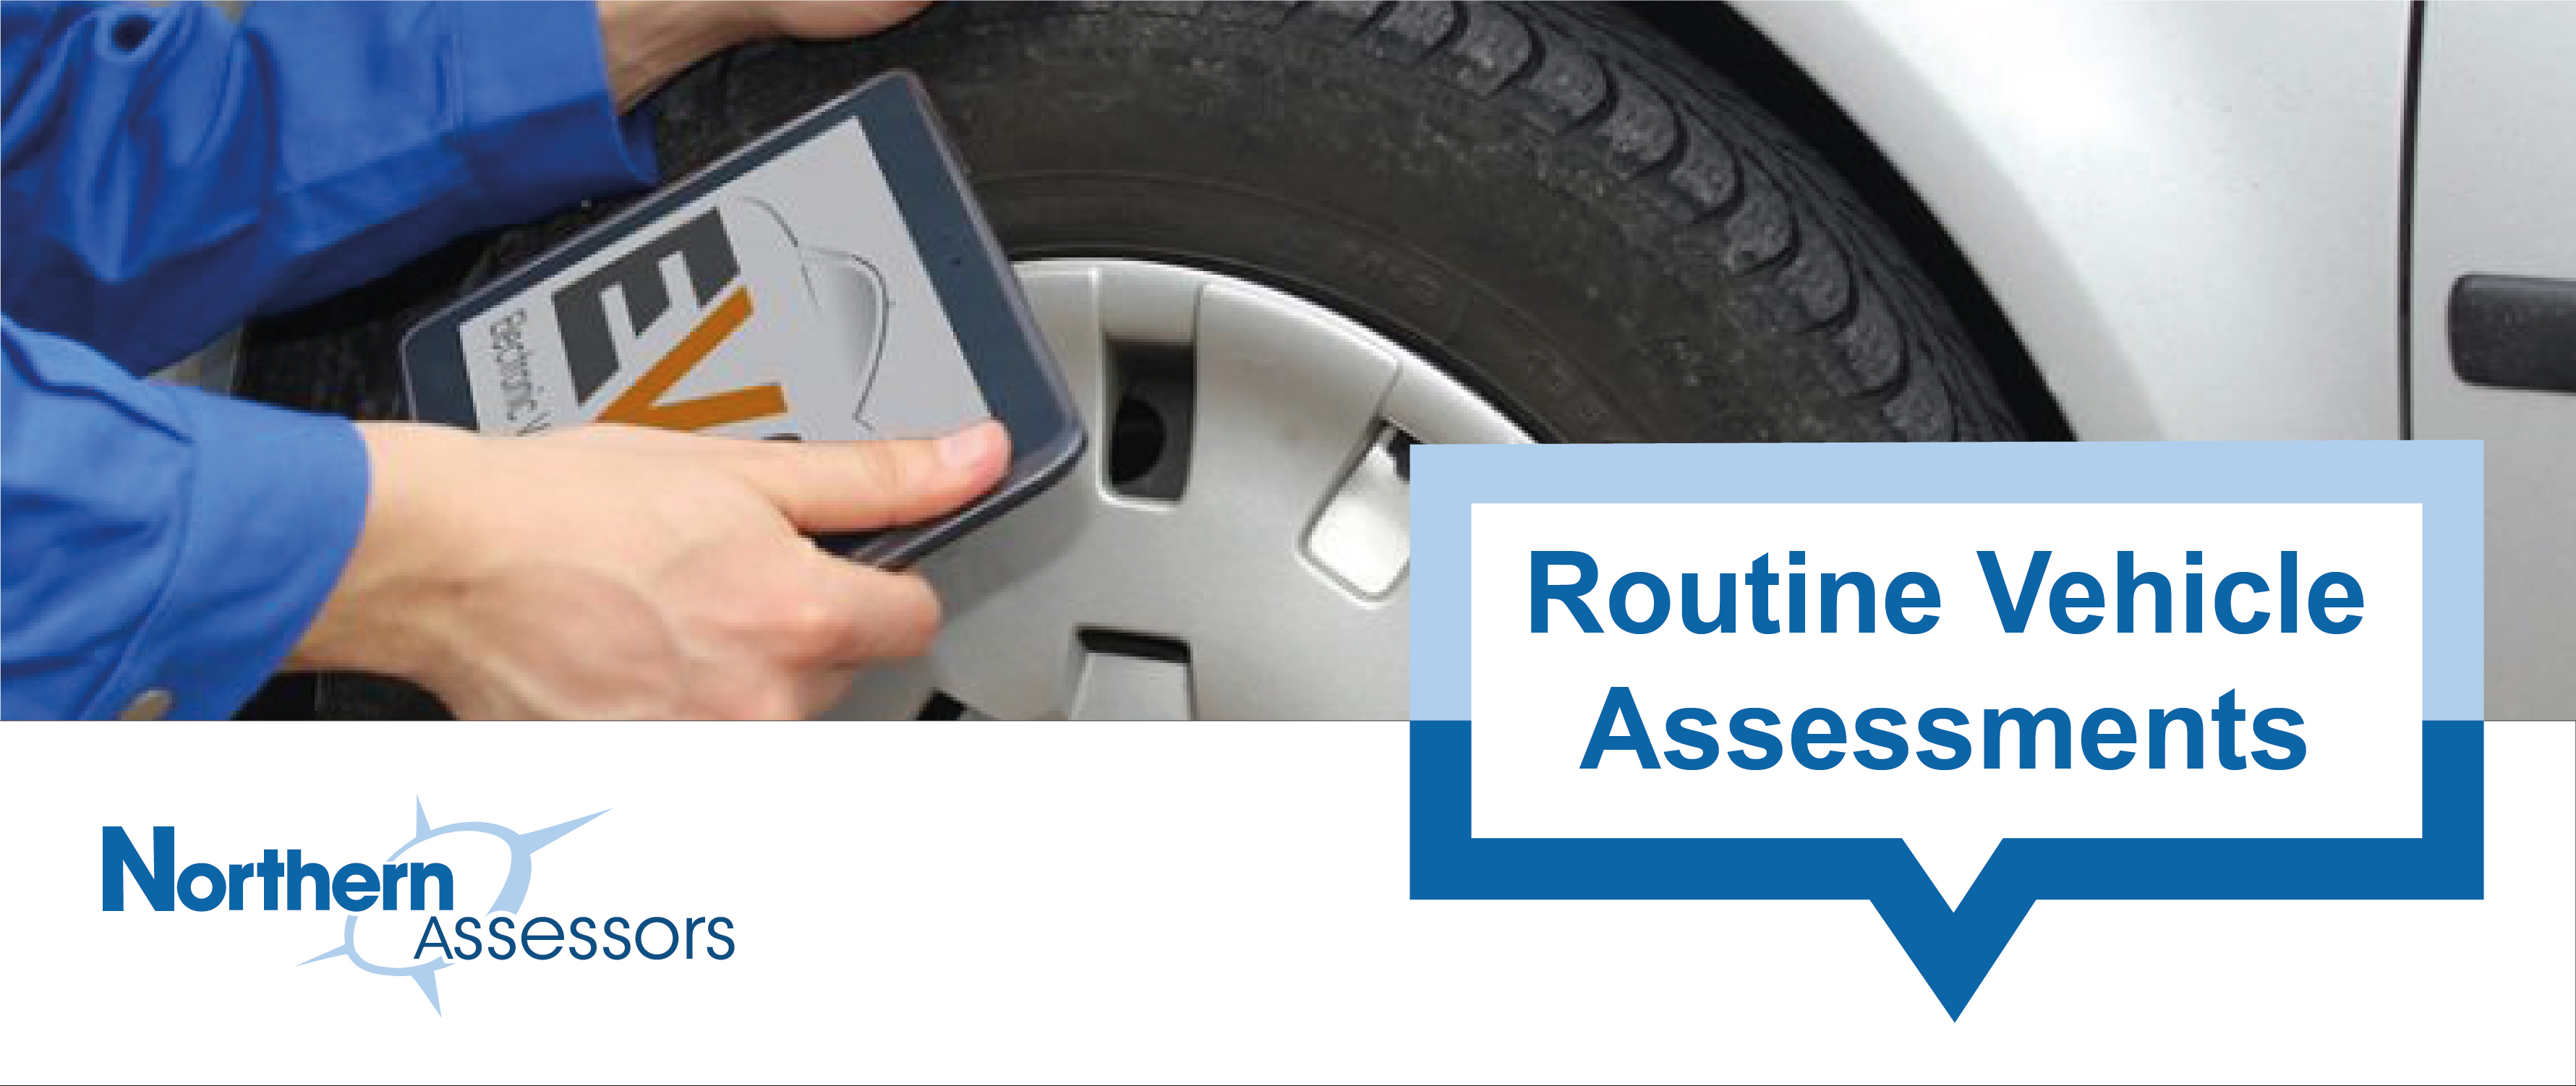 Routine Vehicle Assessments